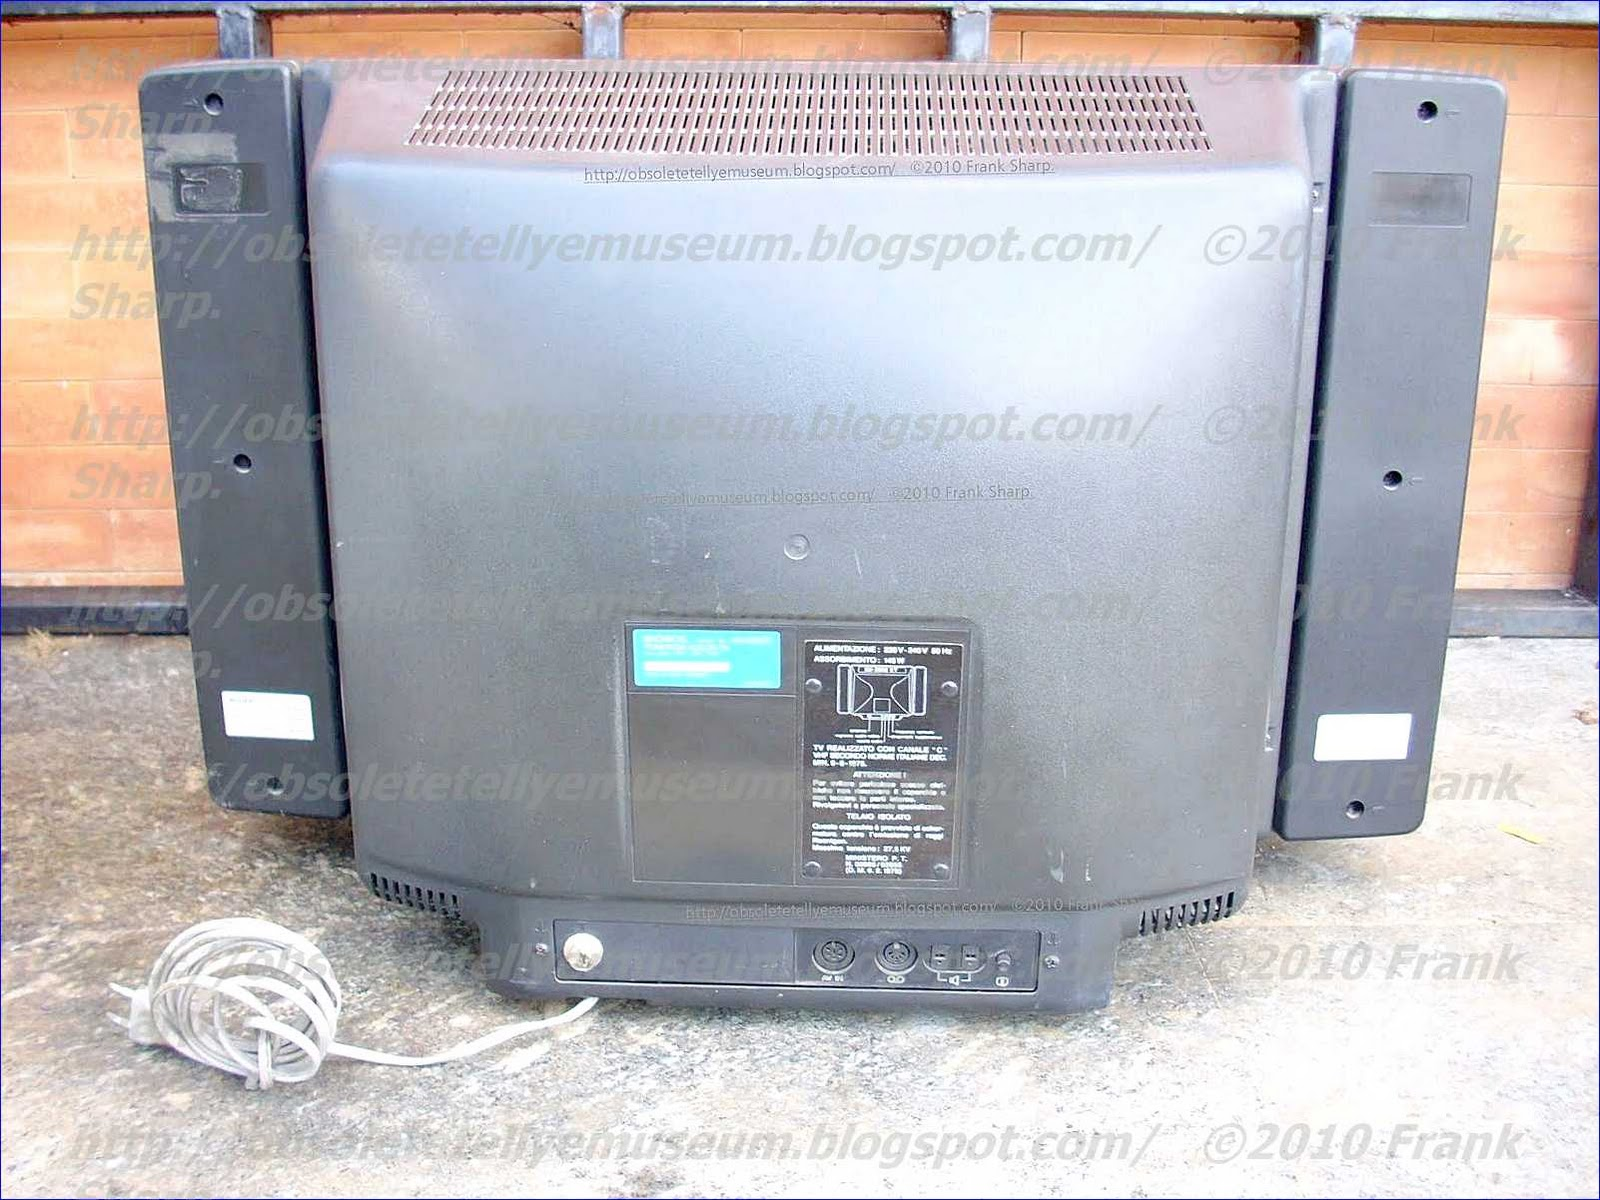 Obsolete Technology Tellye Sony Kv 2222 Et Year 1982 Besides 50 Gfci Breaker Wiring Diagram Furthermore Hot Tub 220 The Is A Stereo 22 Inches Television Set With Nice Speaker Box And An Even Internal Chassis Automatic Pre Programming System For Tv